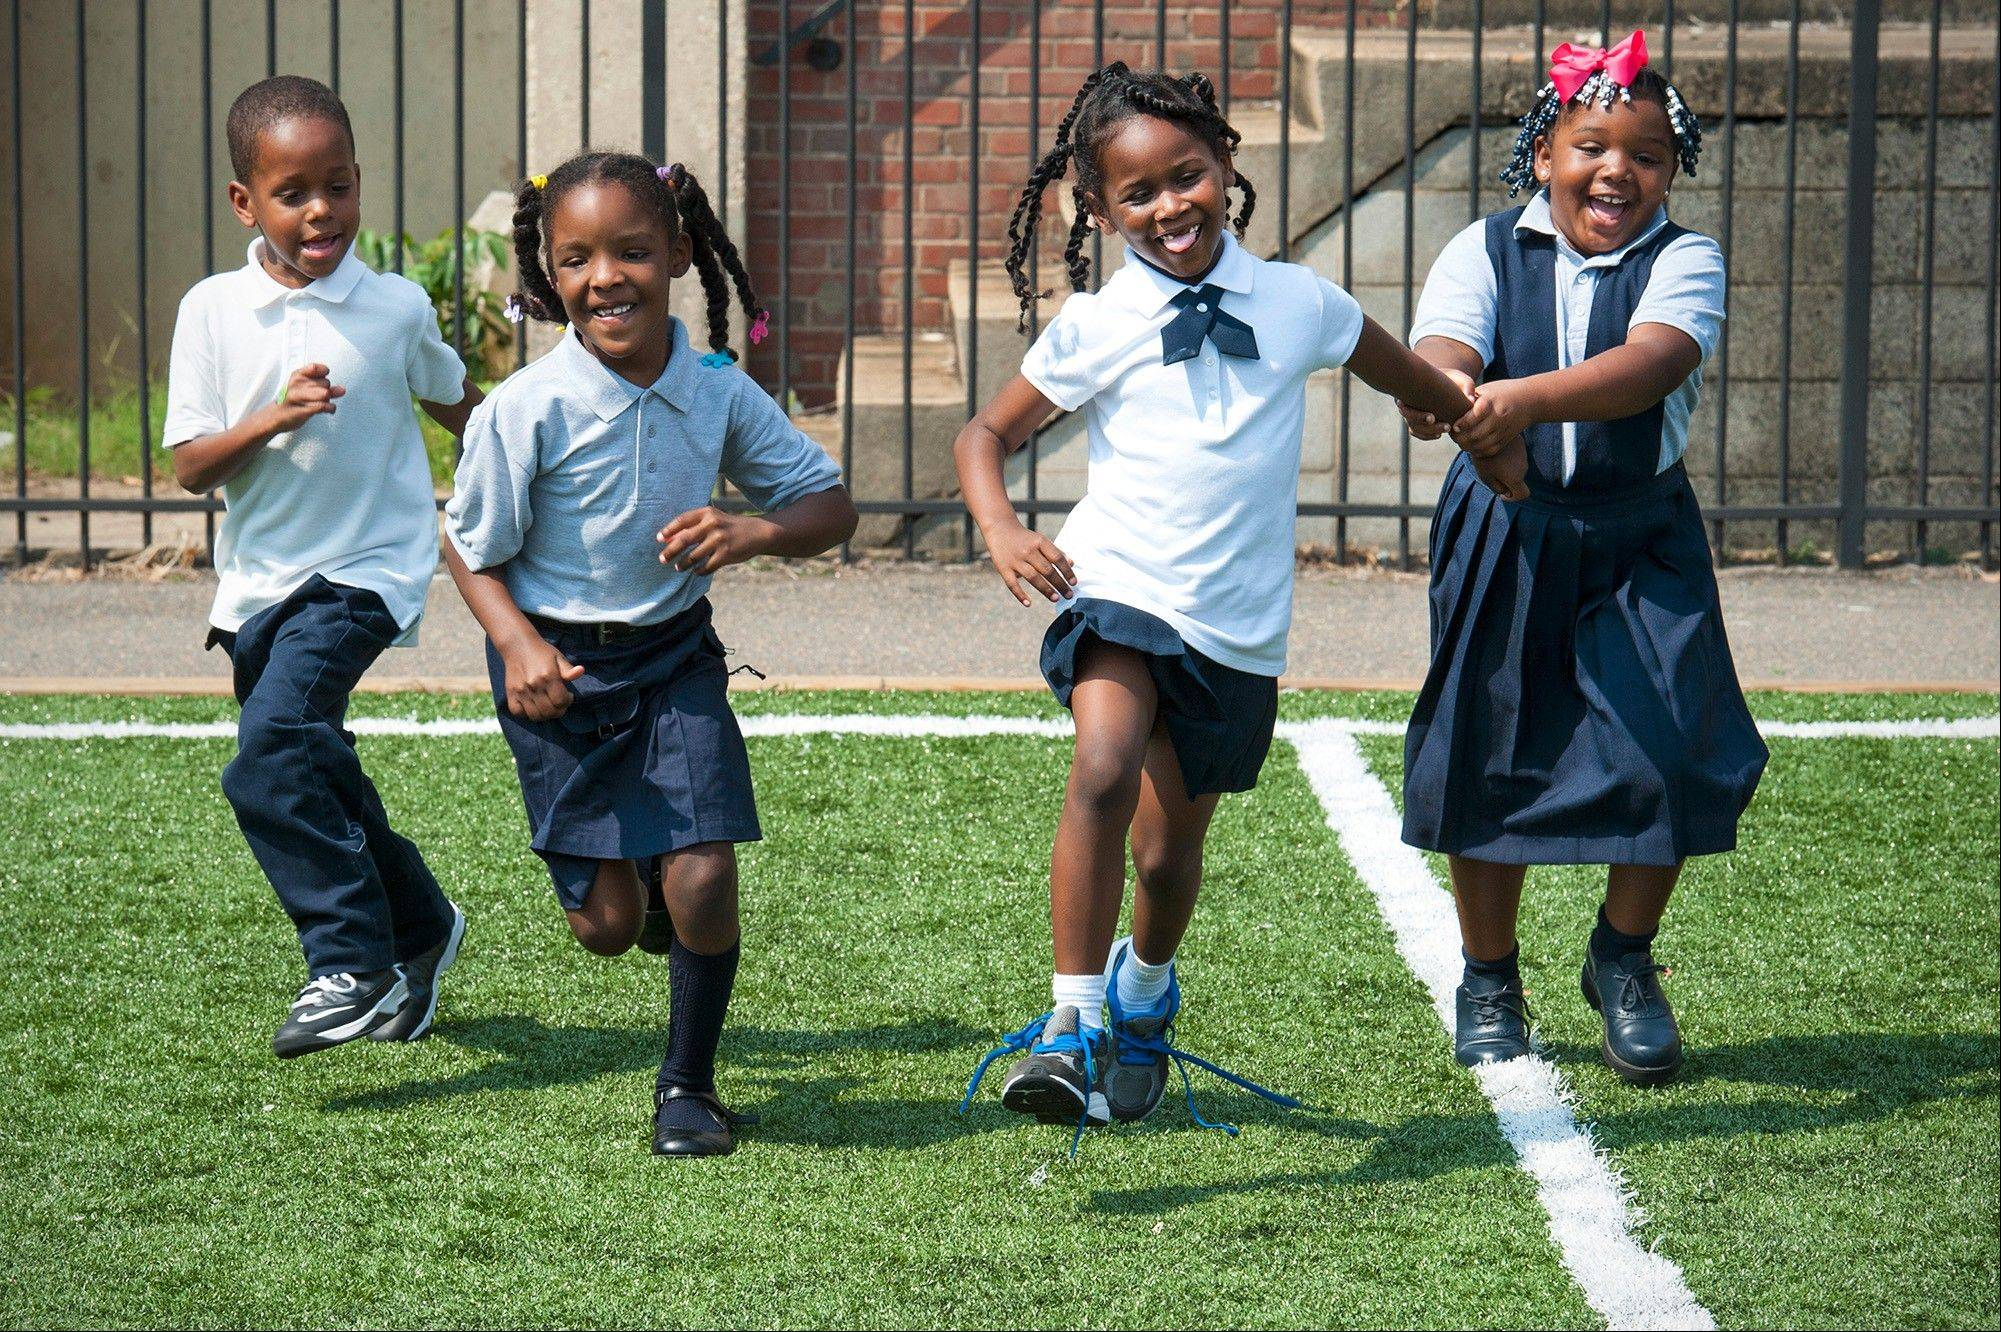 "Trashon Meyer, Jamera Herndon, Moneií Brooks and Marjae Lynch run from the ""Cookie Monster"" during recess at their school in Washington."